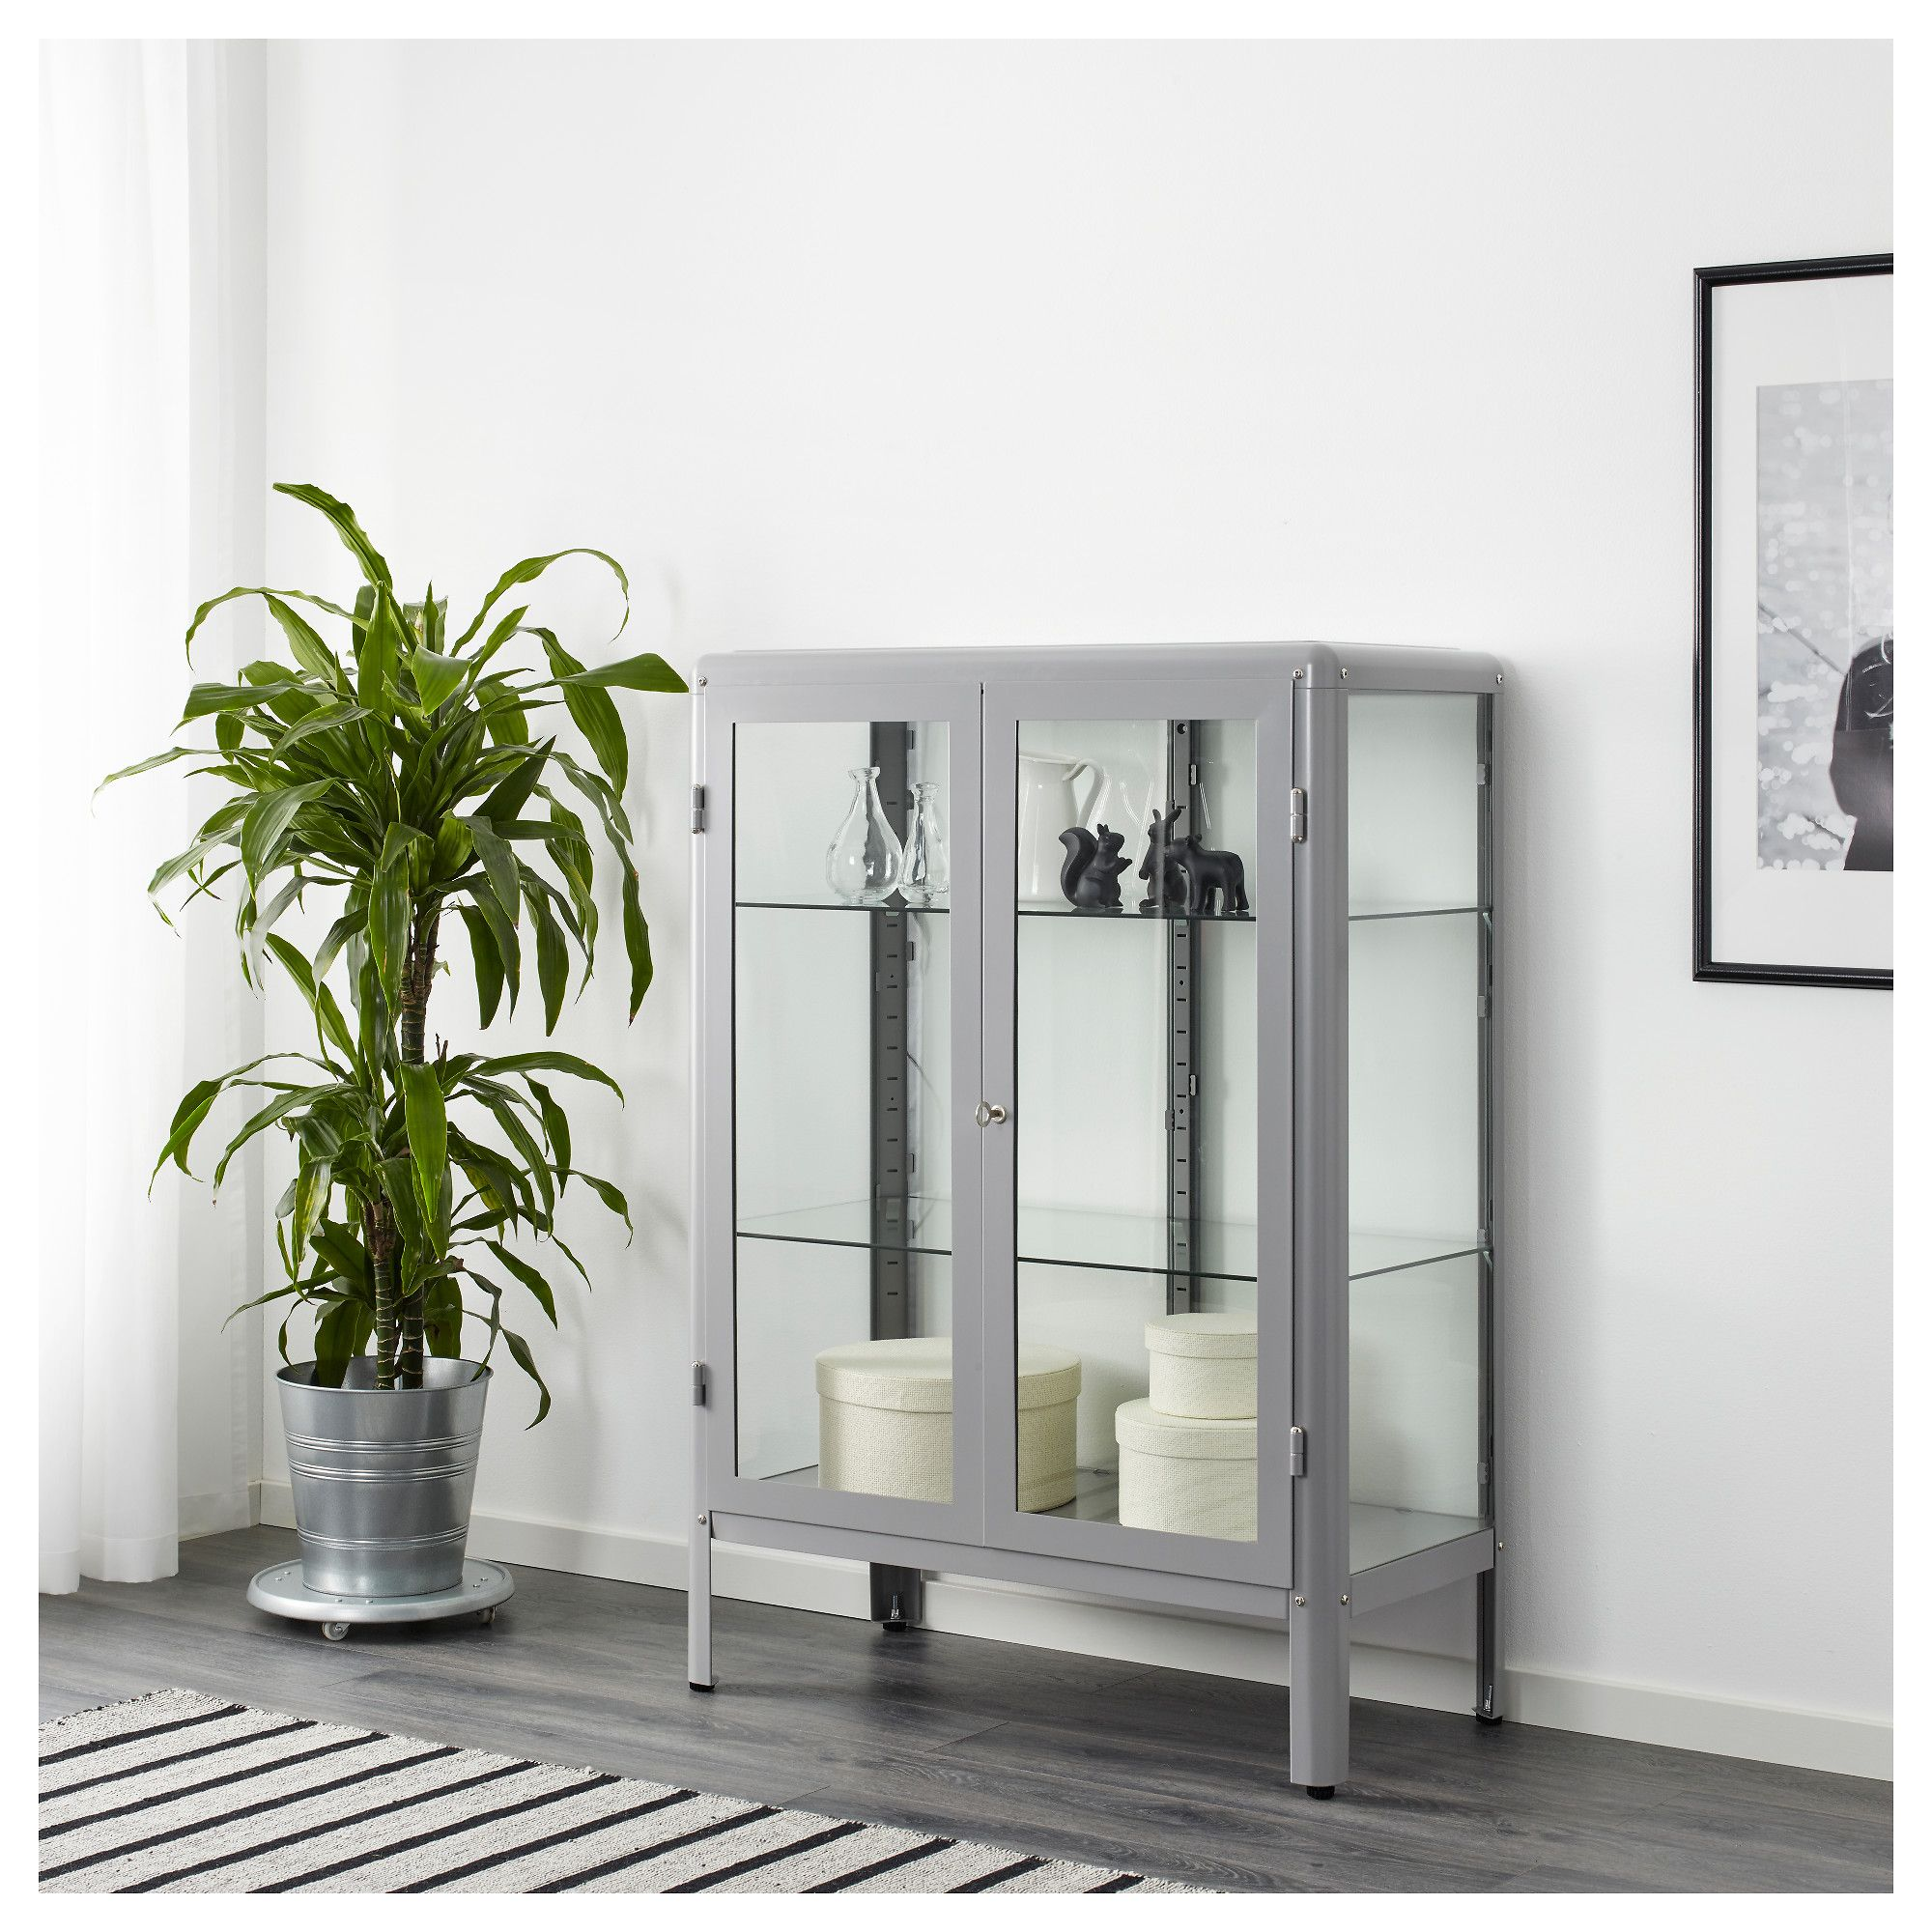 Curio Cabinet eback Display Cases in Modern Rooms